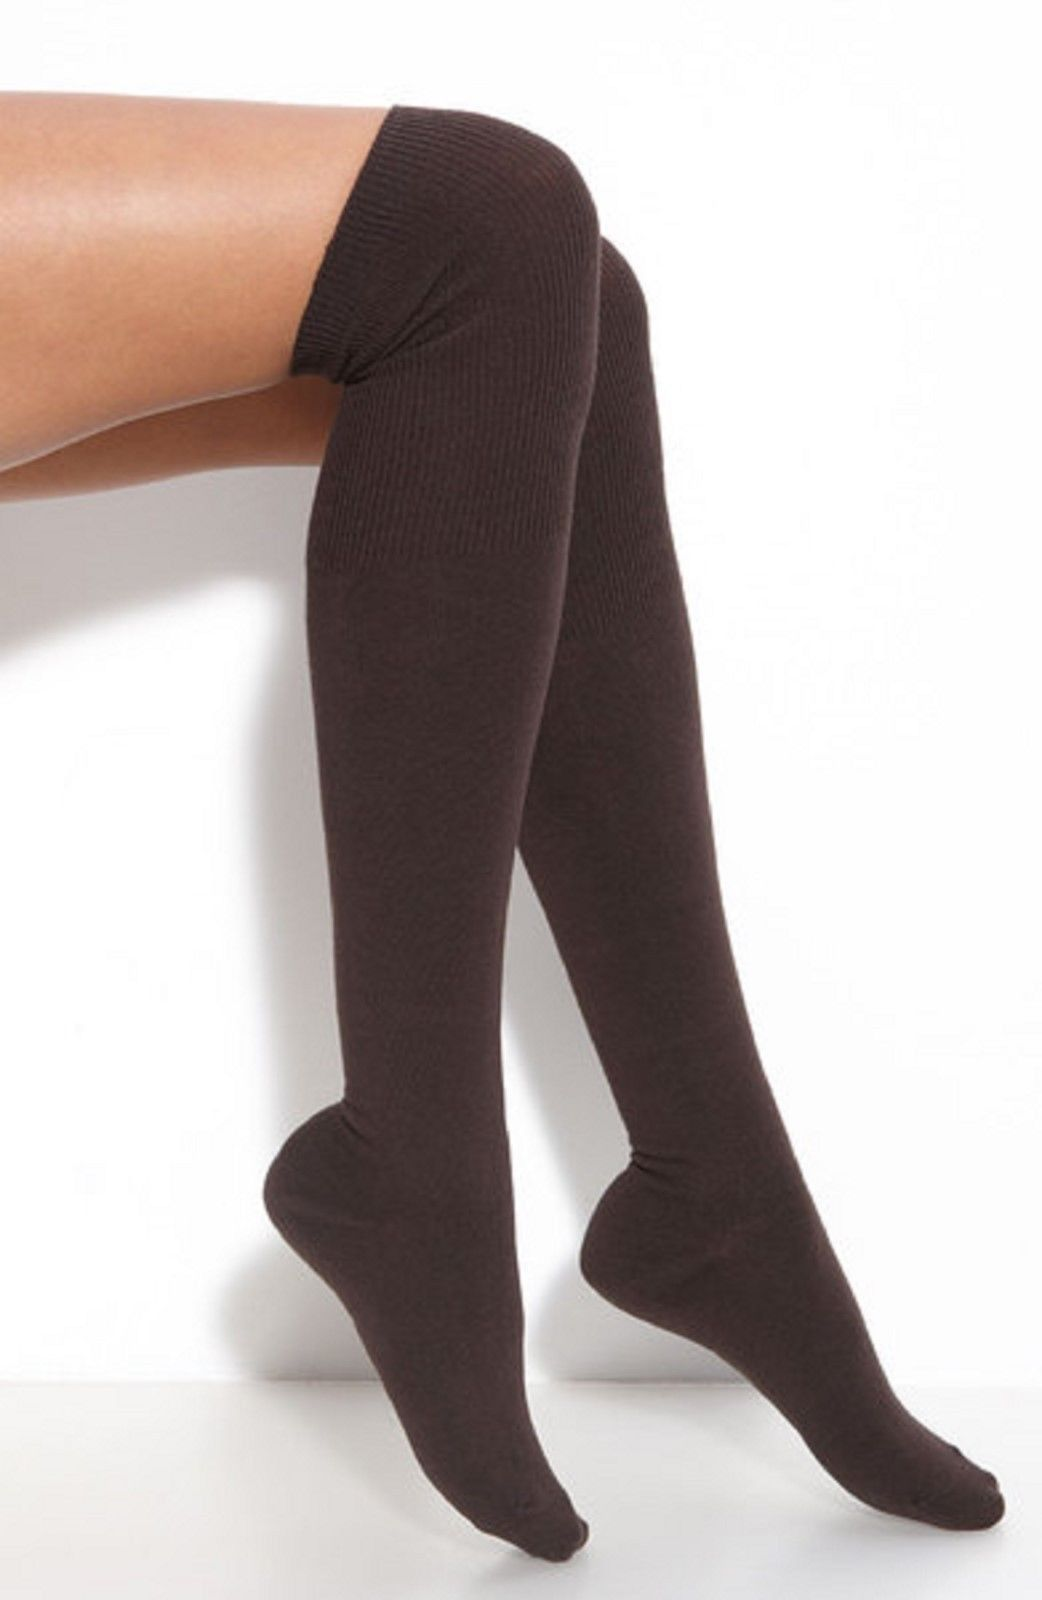 cef9b9d0b NEW GIRLS ADULT TEENAGE BROWN LONG OVER KNEE HIGH SOCKS Size 4-6.5 ...